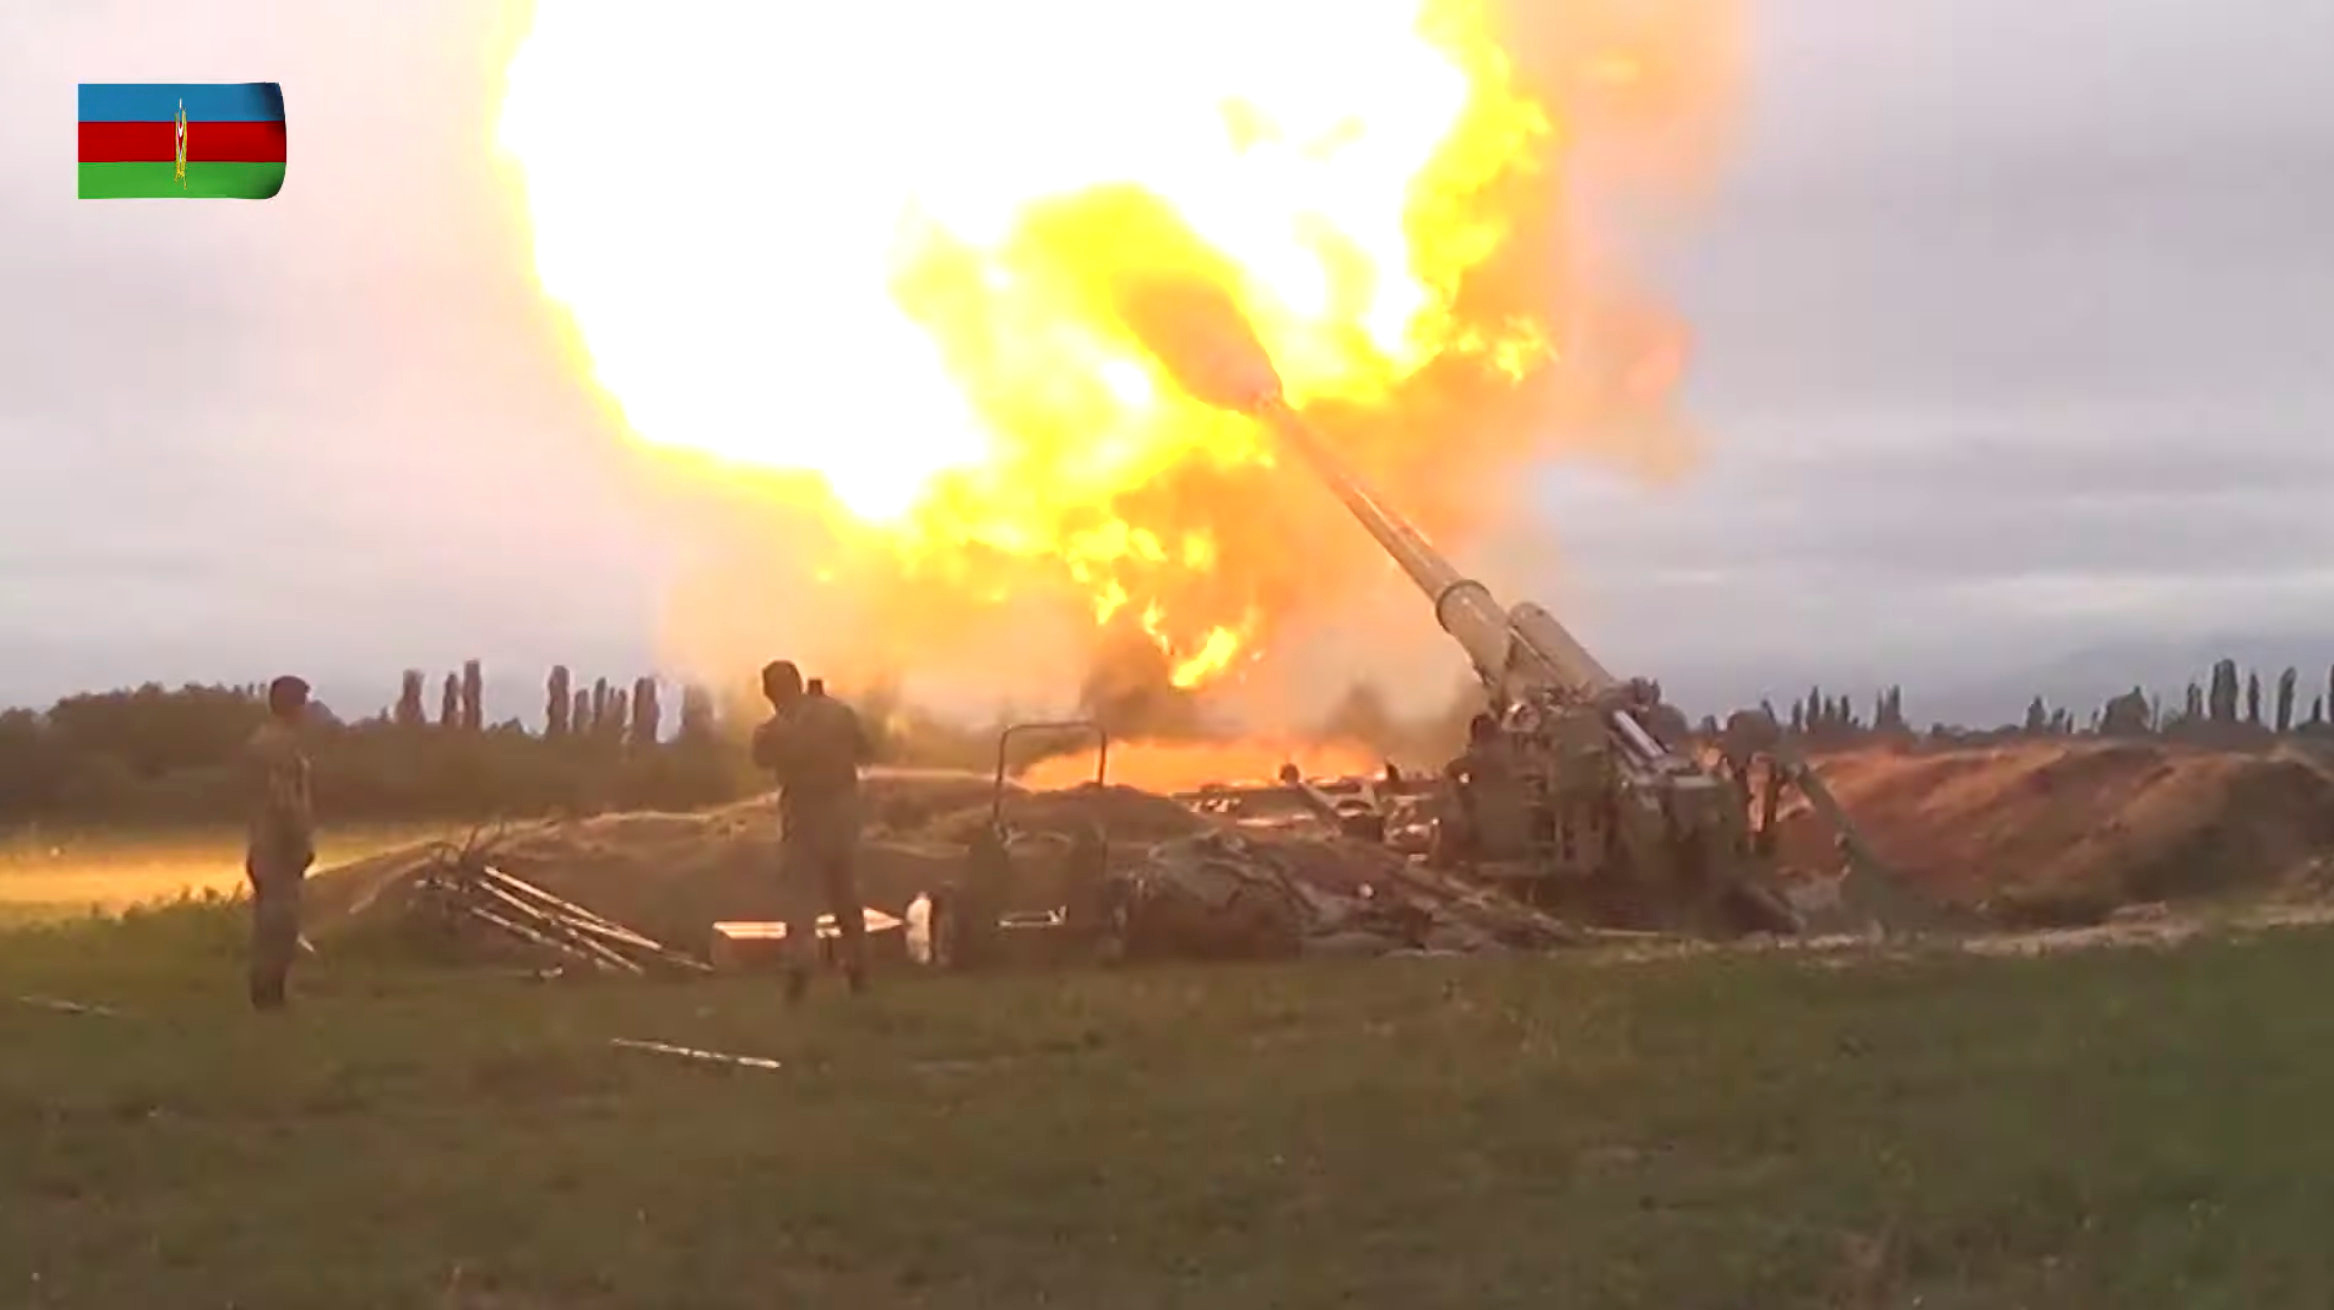 A still image from a video released by the Azerbaijan's Defence Ministry shows members of Azeri armed forces firing artillery during clashes between Armenia and Azerbaijan over the territory of Nagorno-Karabakh in an unidentified location, in this still image from footage released September 28, 2020. Defence Ministry of Azerbaijan